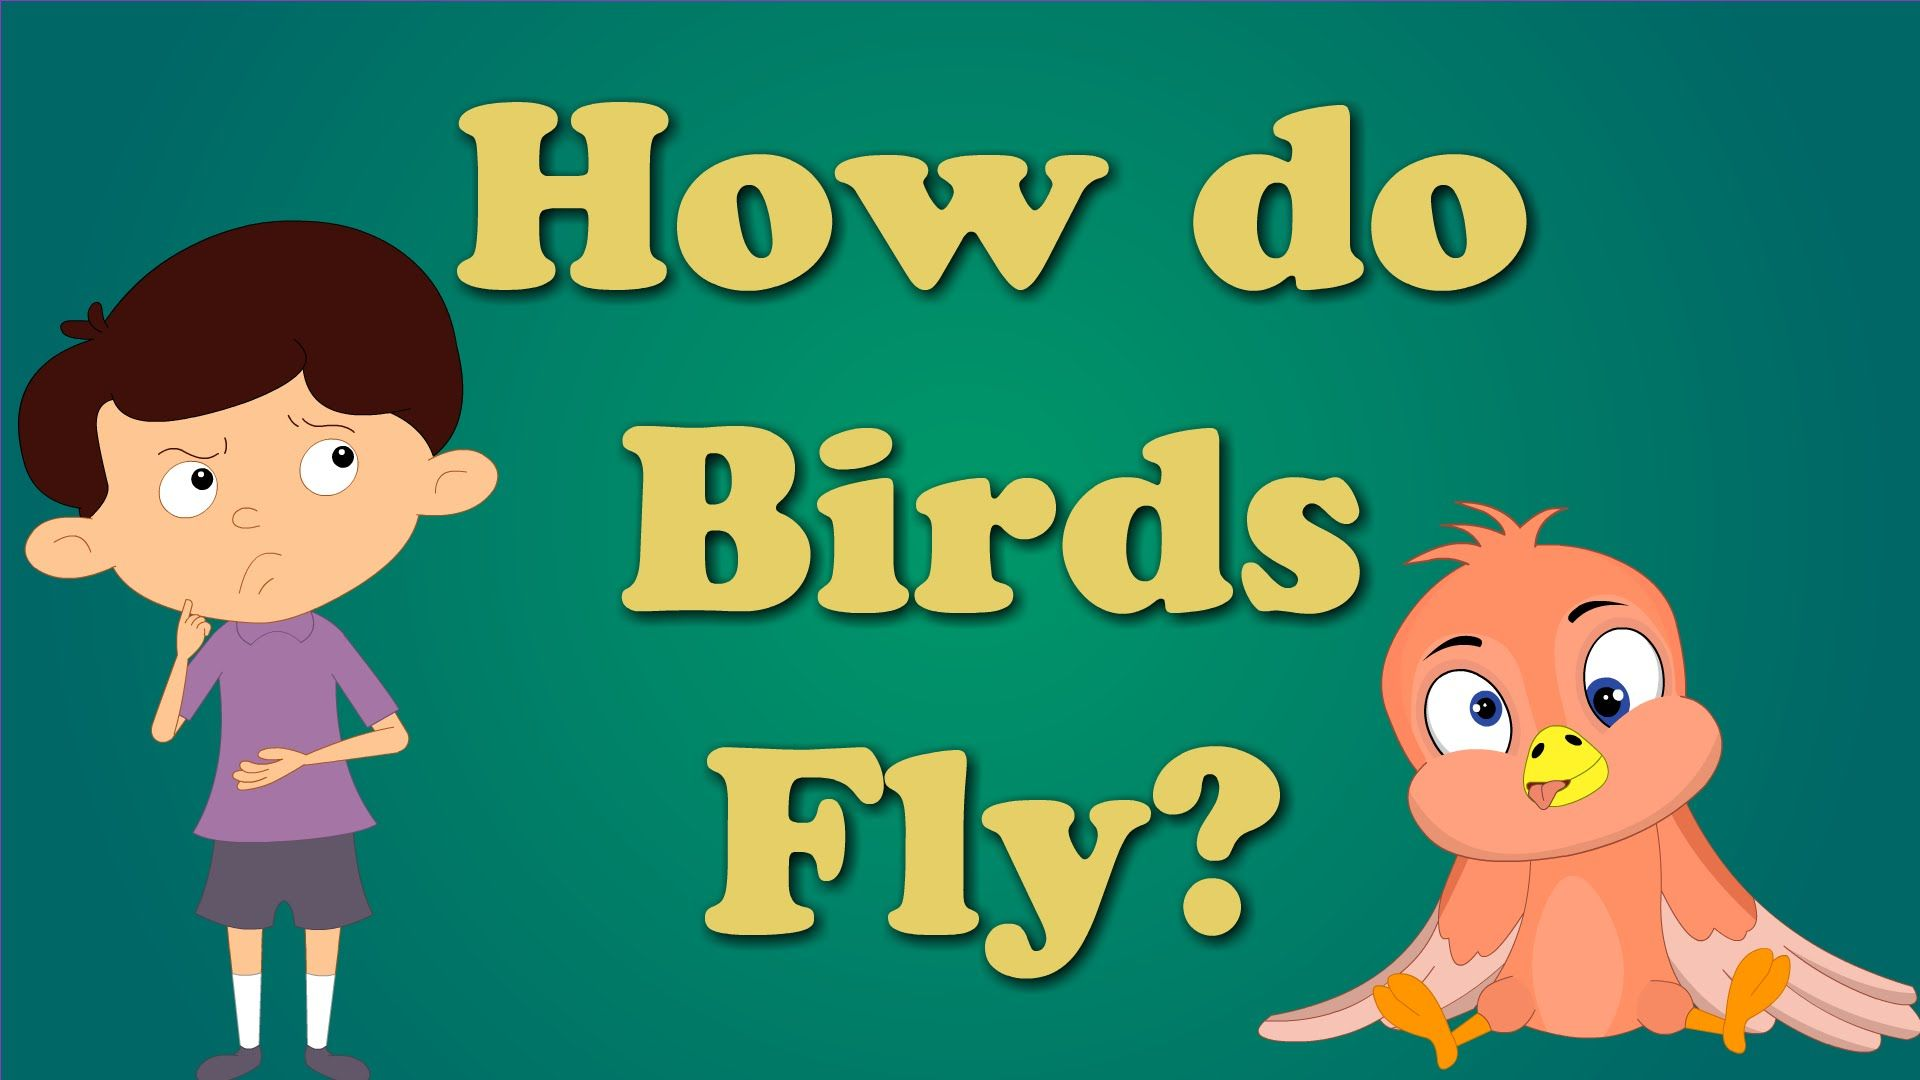 How Do Birds Fly For Children Explains How The Shape Of The Wings And The Weight Of A Bird Helps It Fly How Do Birds Fly Birds For Kids Birds Flying